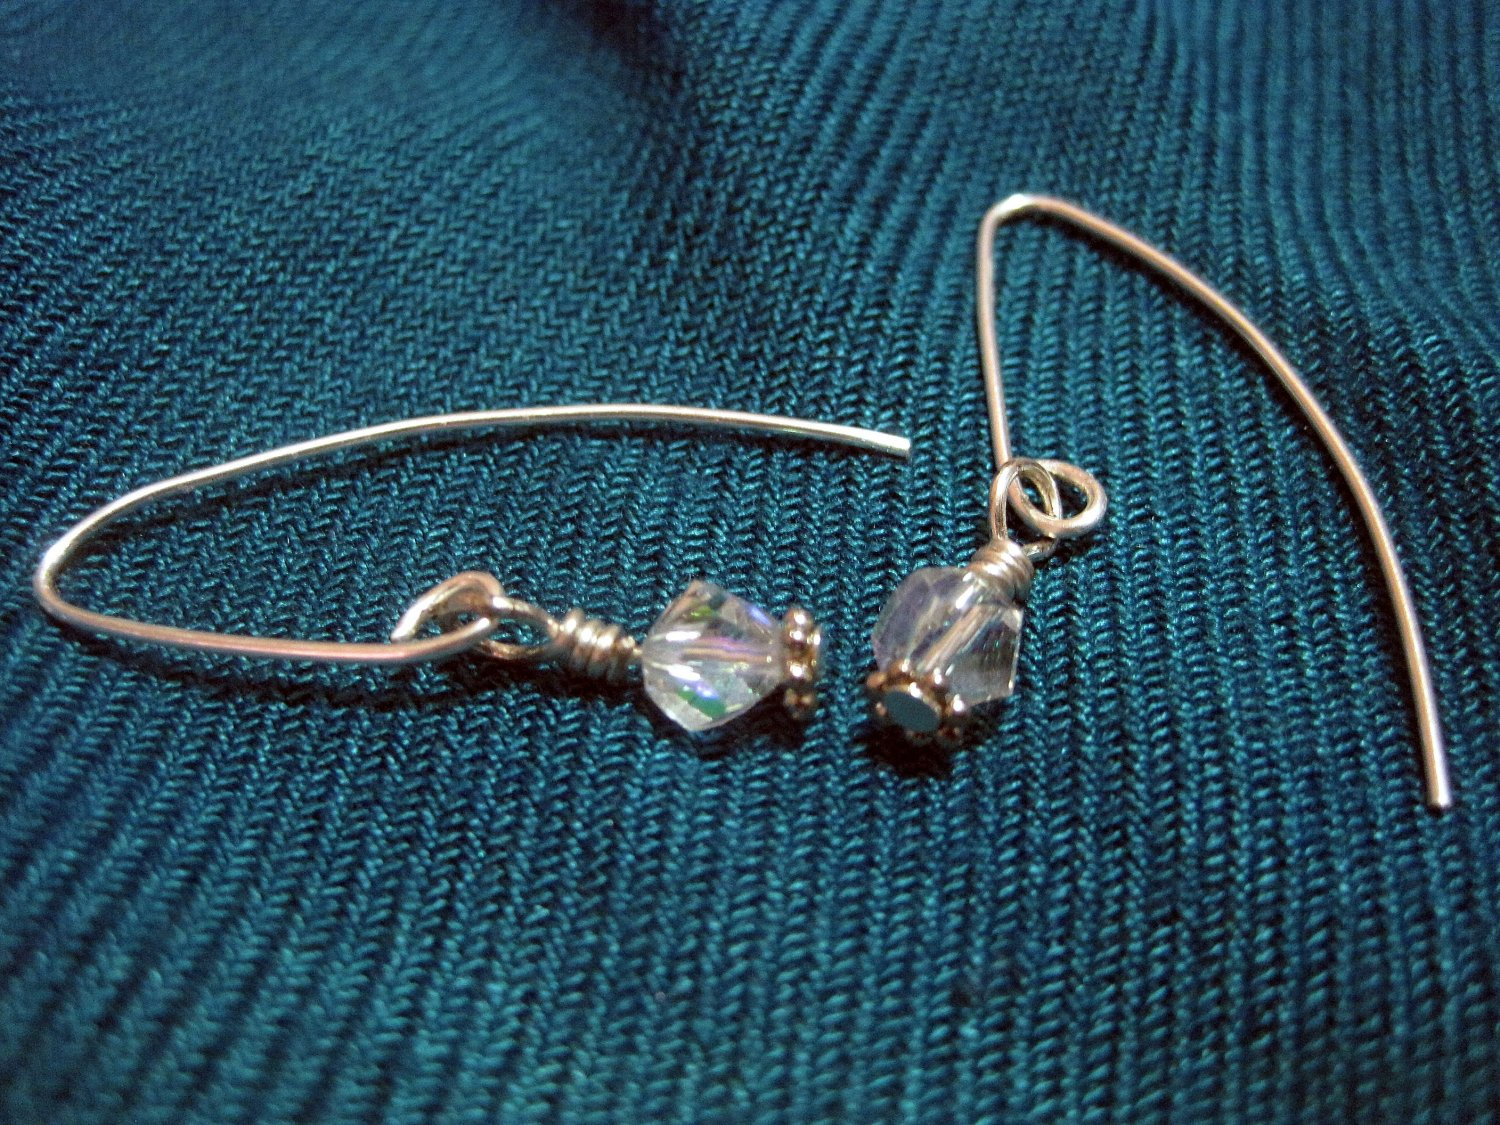 Clear/Irredescent Swarovski Crystals on Silver Plated French Ear Hooks